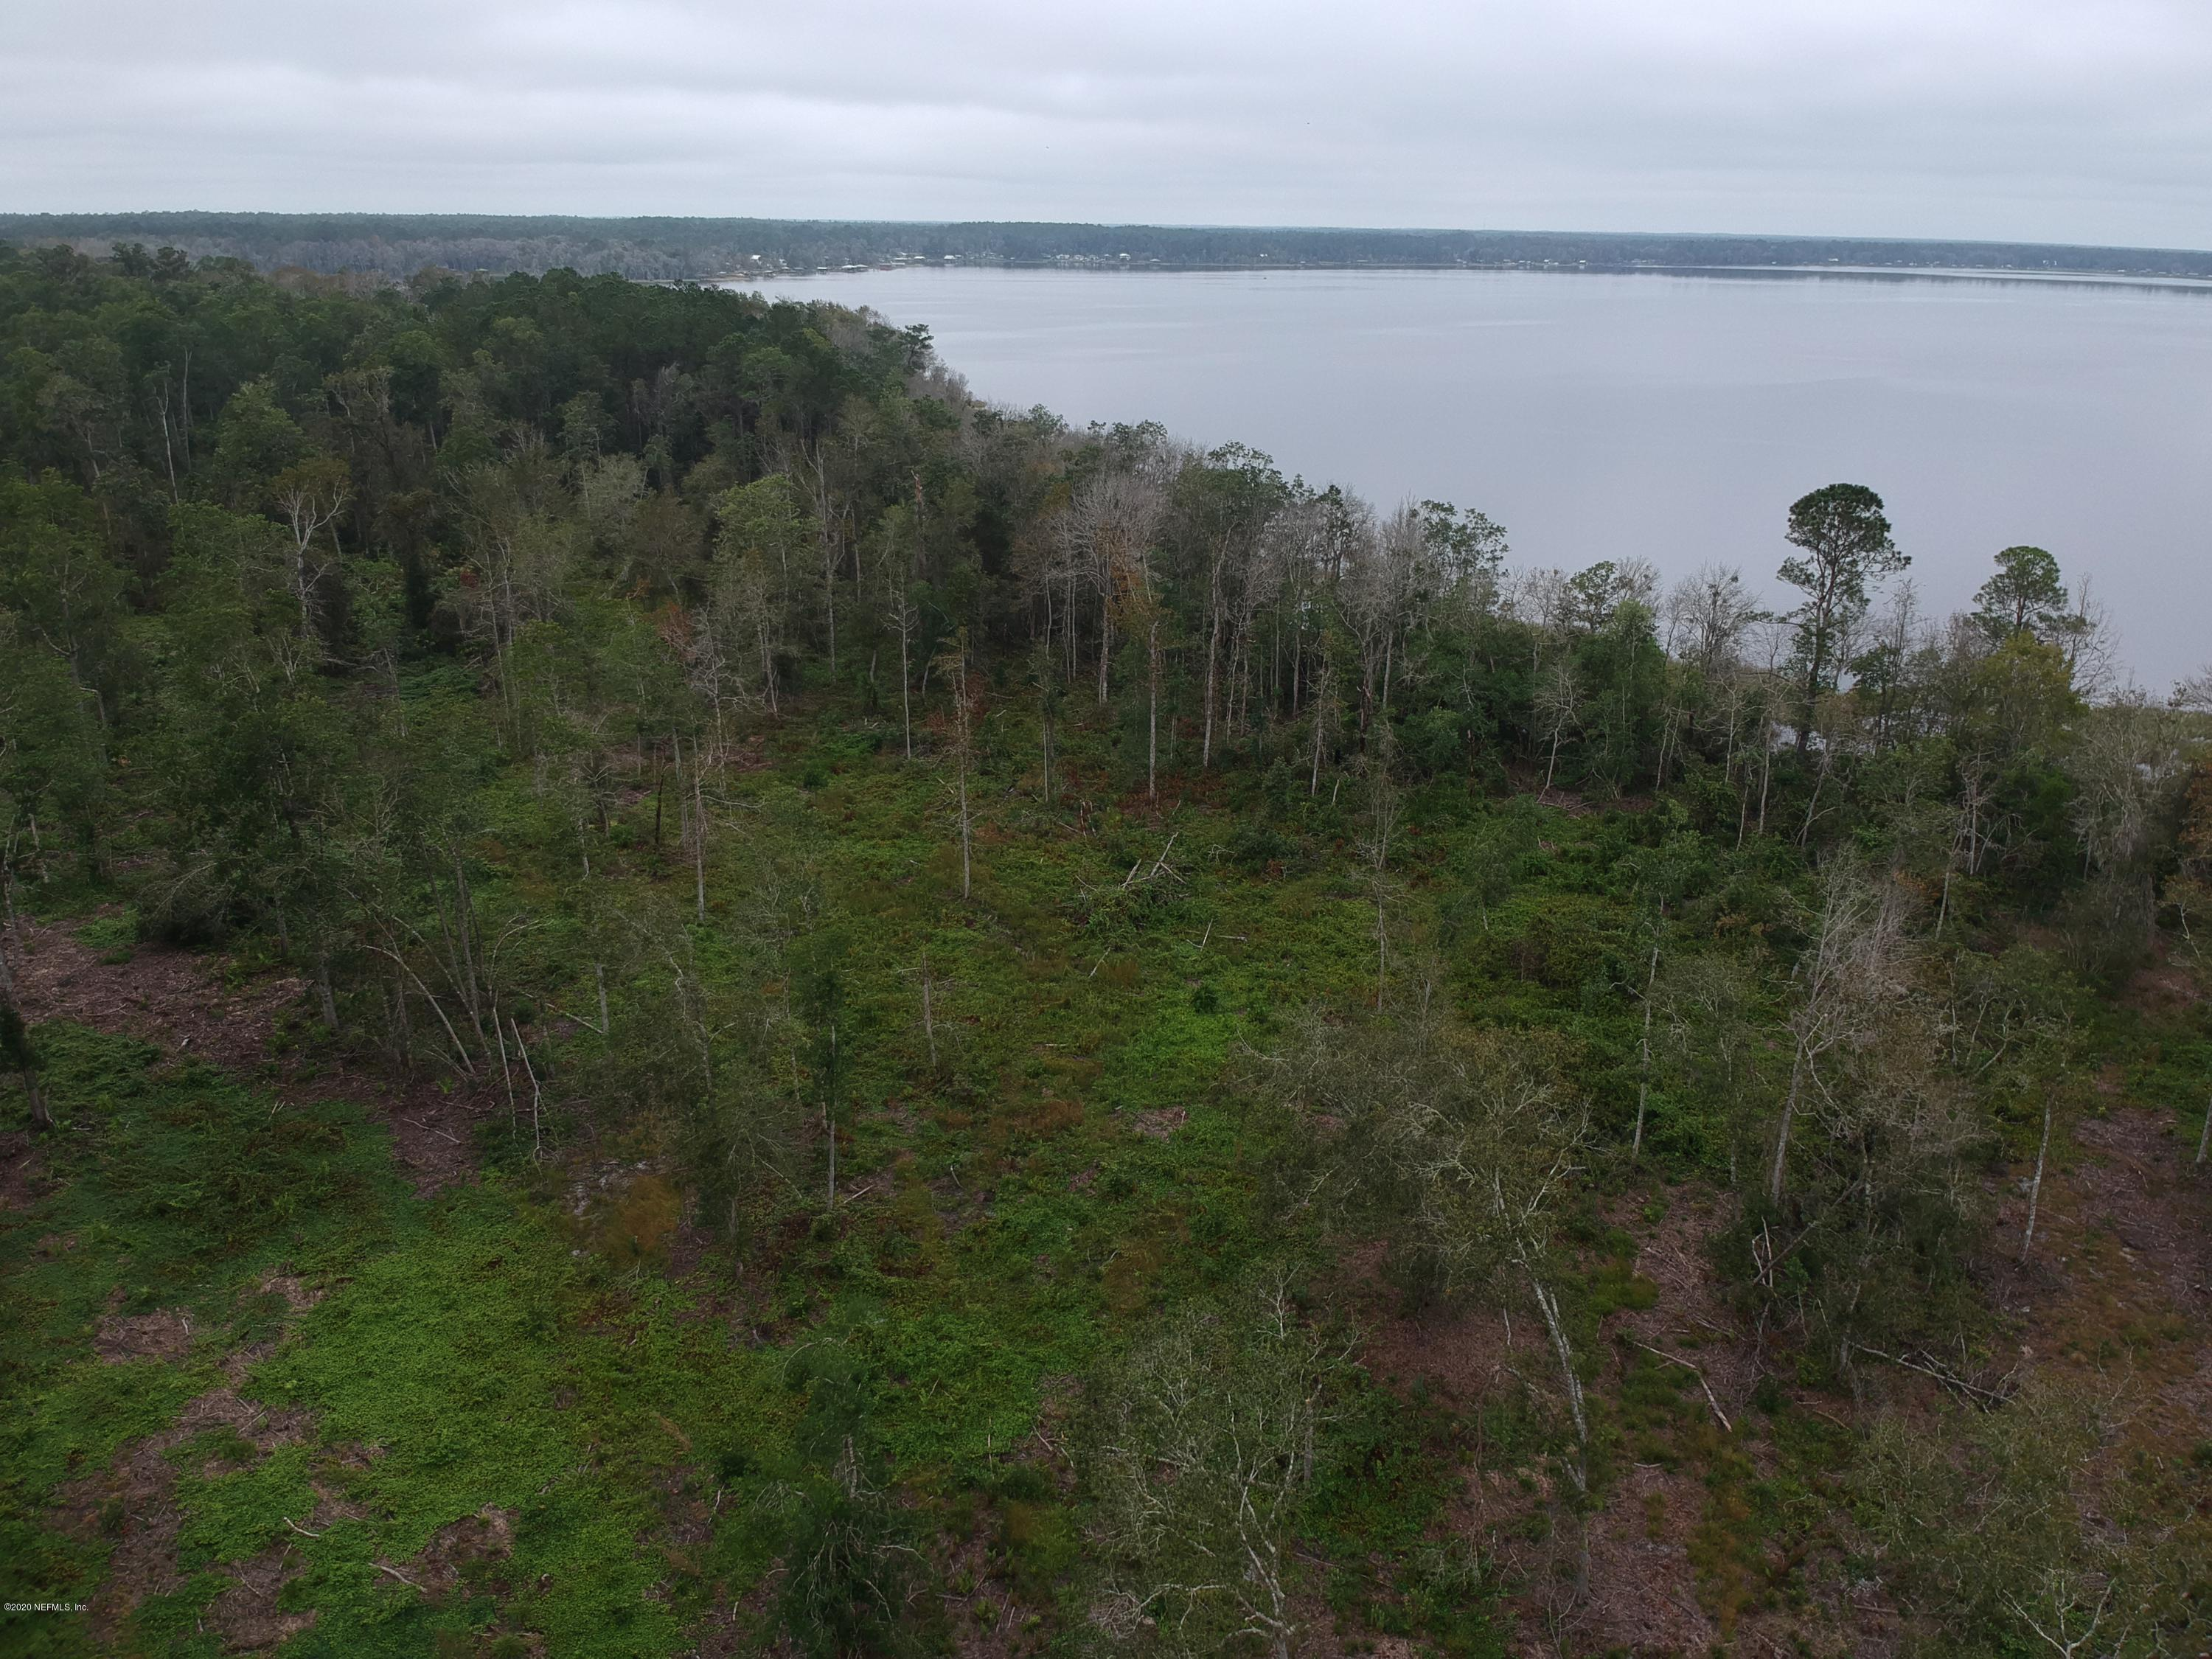 0 TOMTATE, FLORAHOME, FLORIDA 32140, ,Vacant land,For sale,TOMTATE,1083053